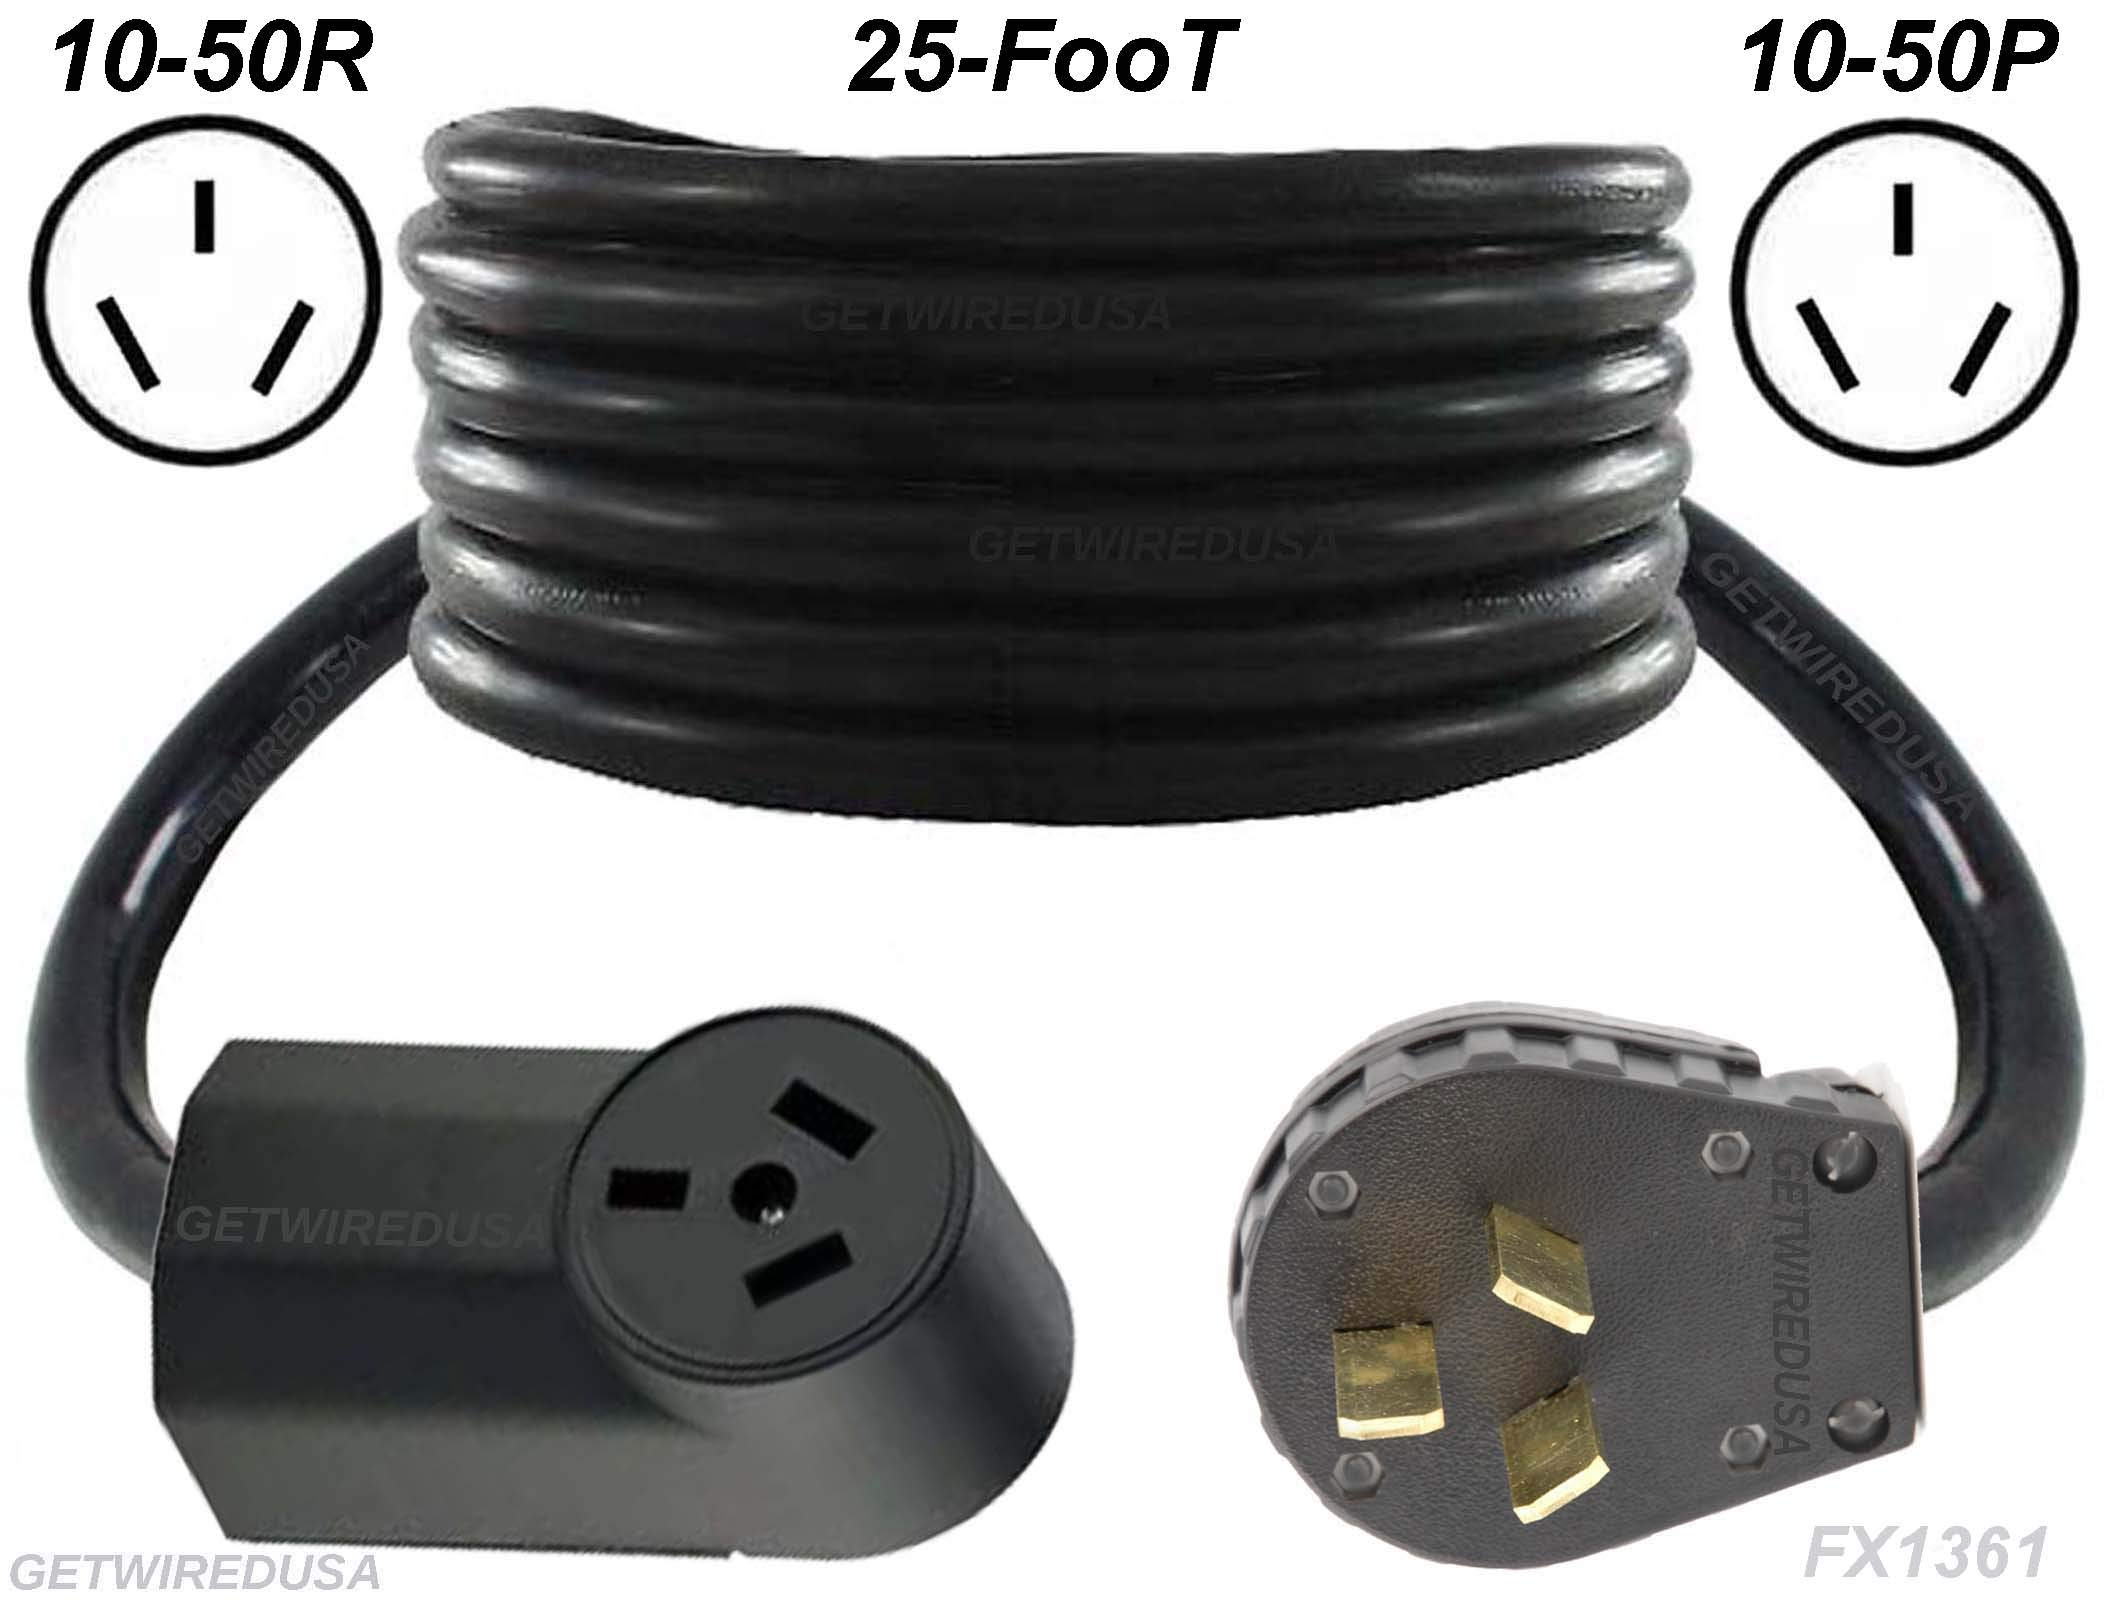 Range, Stove, Oven, 25-FT Extension Cord 10-50P Male 3-Pin Plug To 10-50R Female Receptacle, Heavy Duty, Real Copper Wire, 10/3 10AWG 10-Gauge, NEMA, 25-Foot Long, Made In American, FX1361-R by getwiredusa